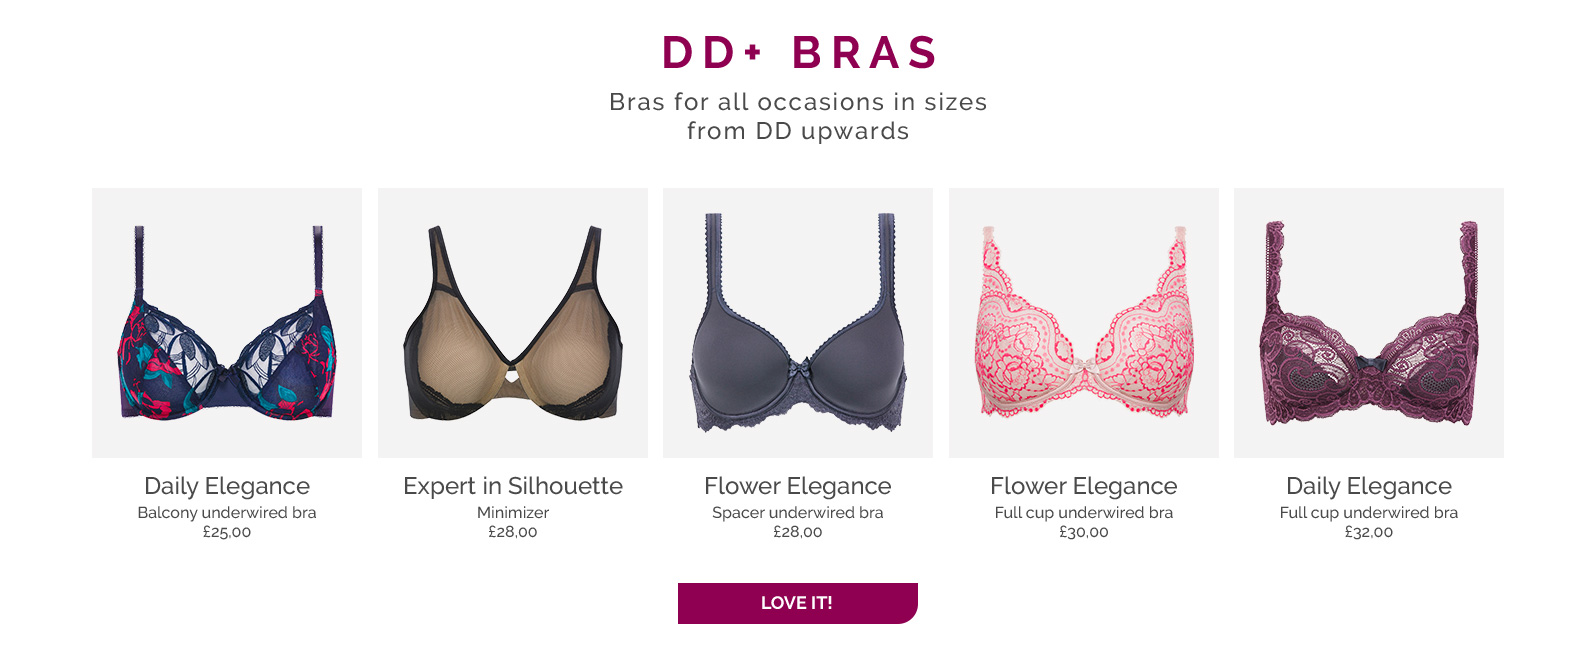 DD+ Bras Bras for all occasions in sizes from DD upwards